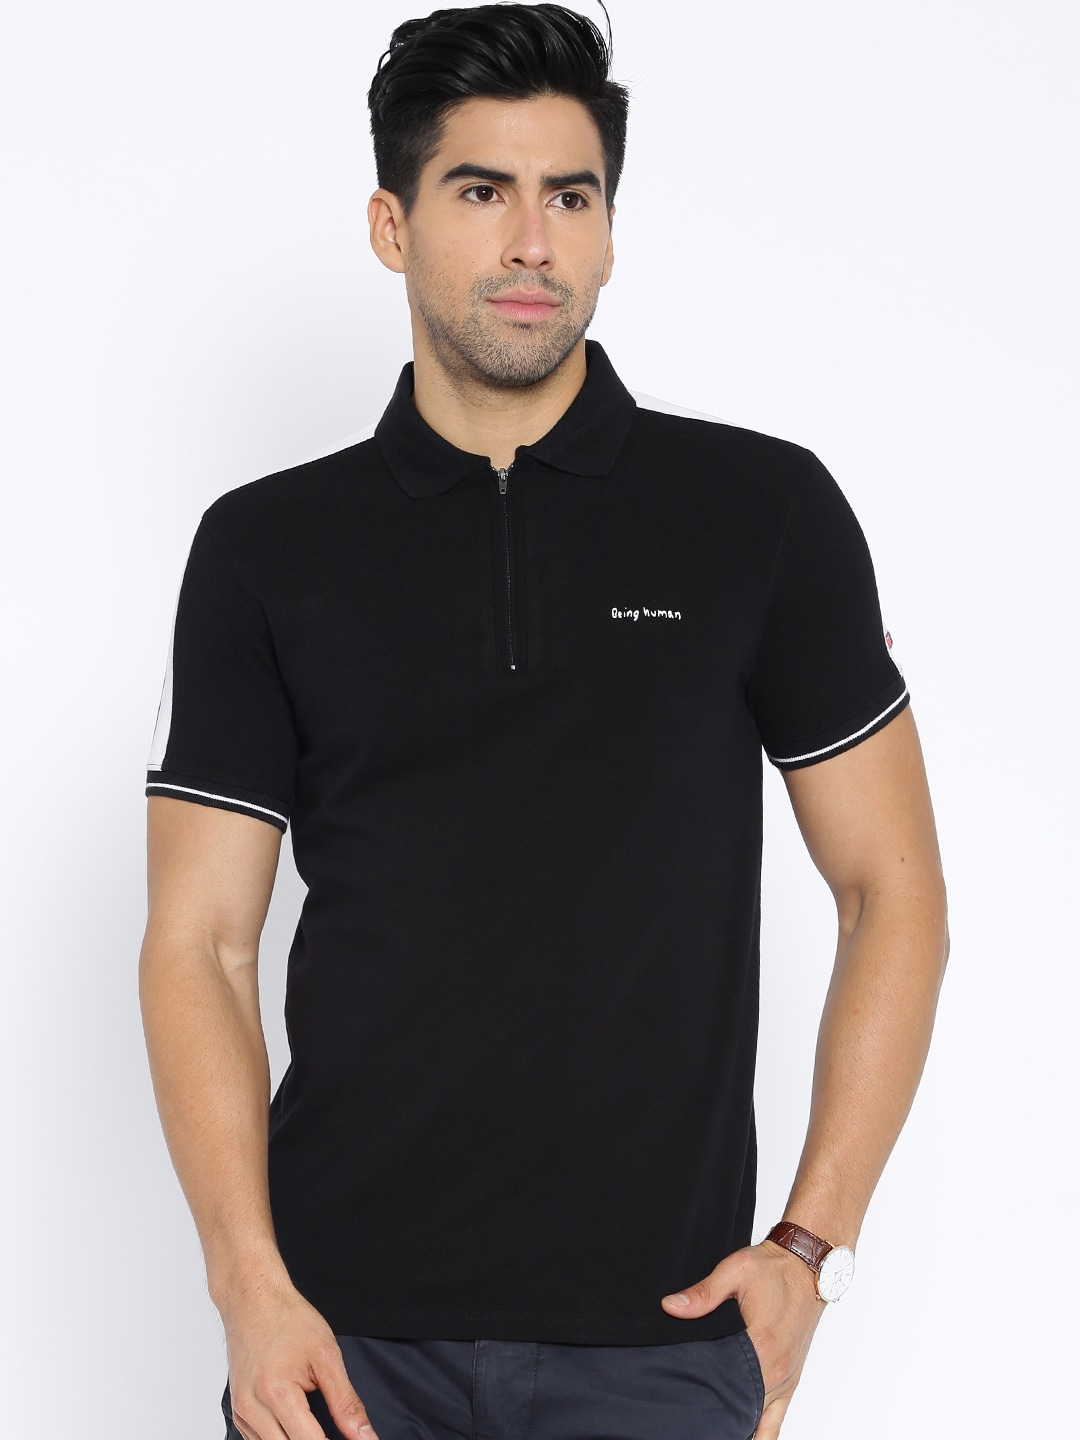 Buy being human clothing black polo t shirt apparel for men for Being human t shirts buy online india